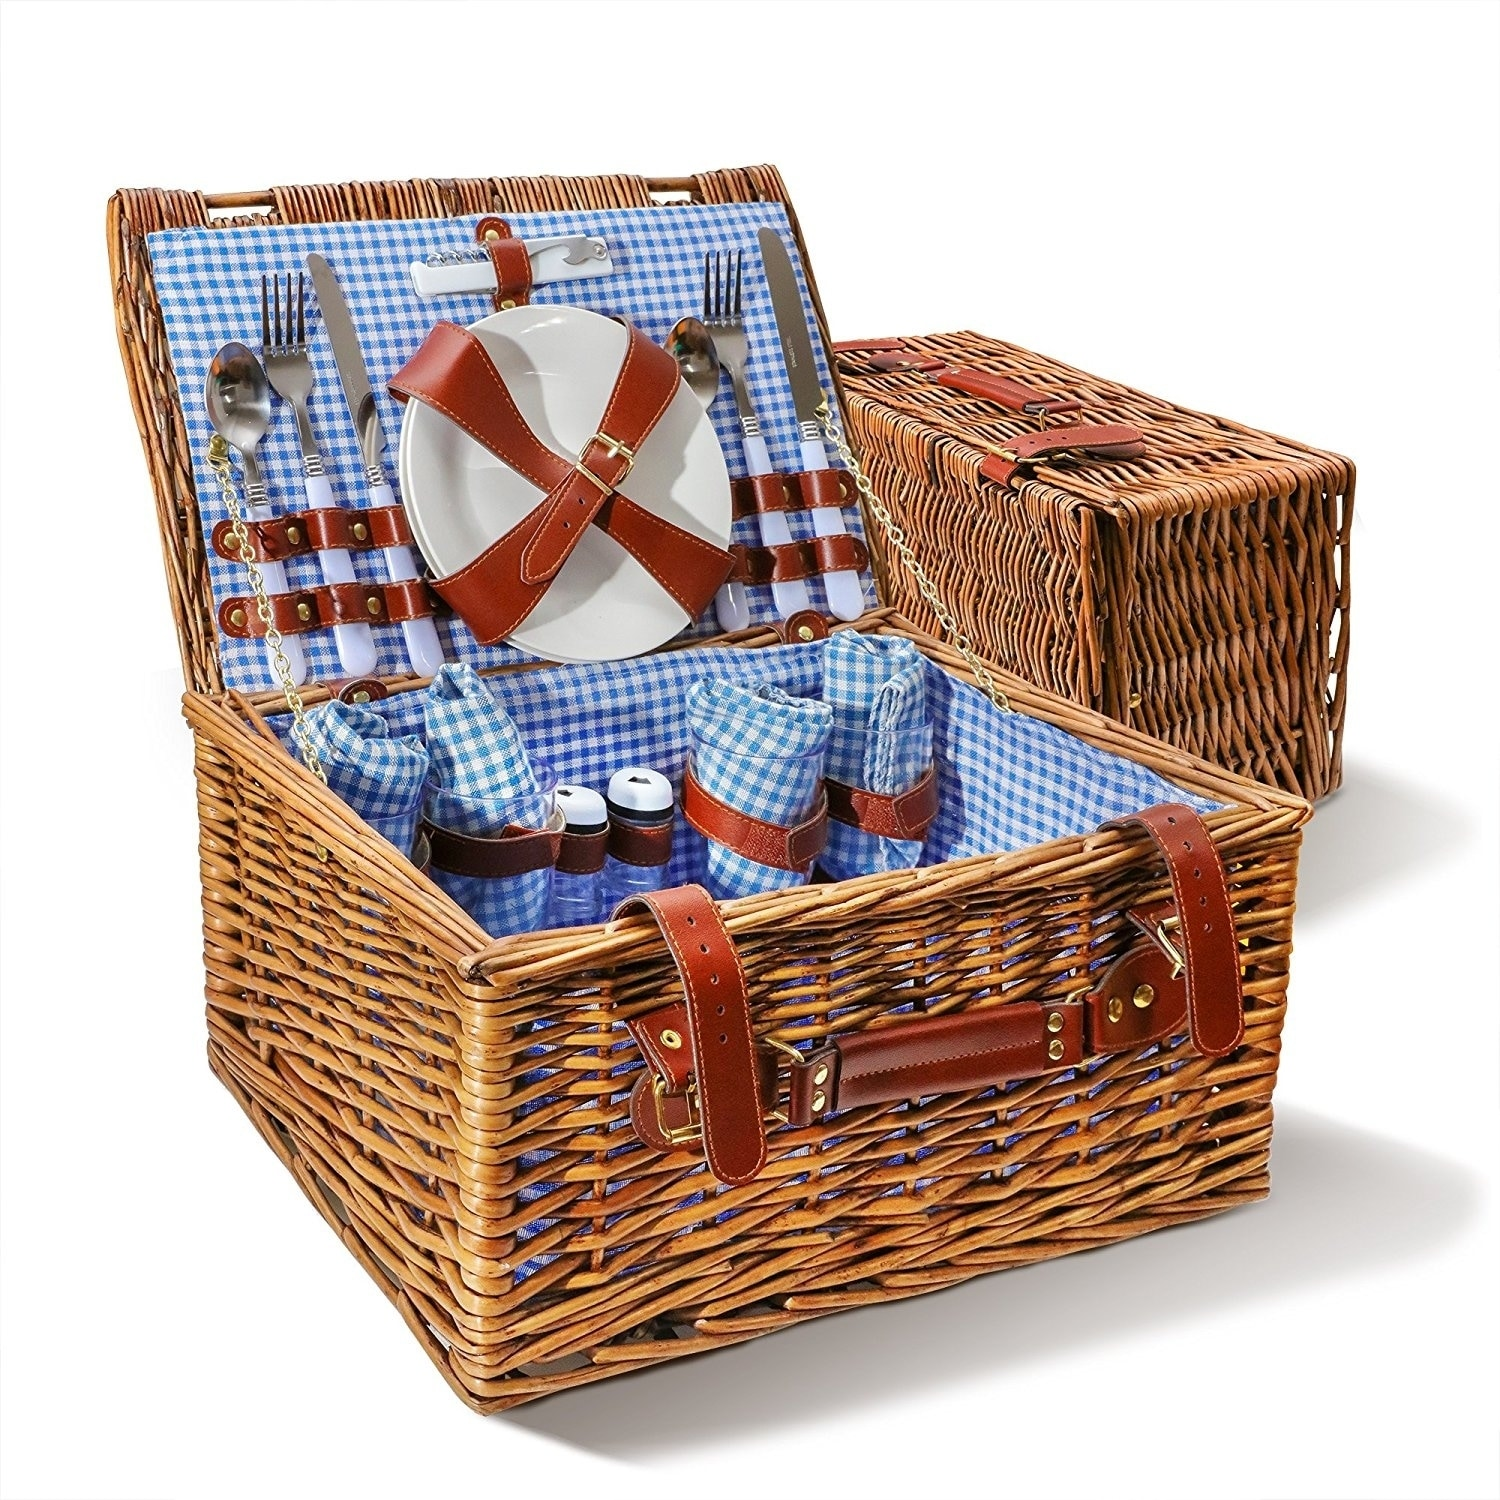 Wicker 4 Person Picnic Basket Hamper Set Free Shipping On Orders Over 45 25744125